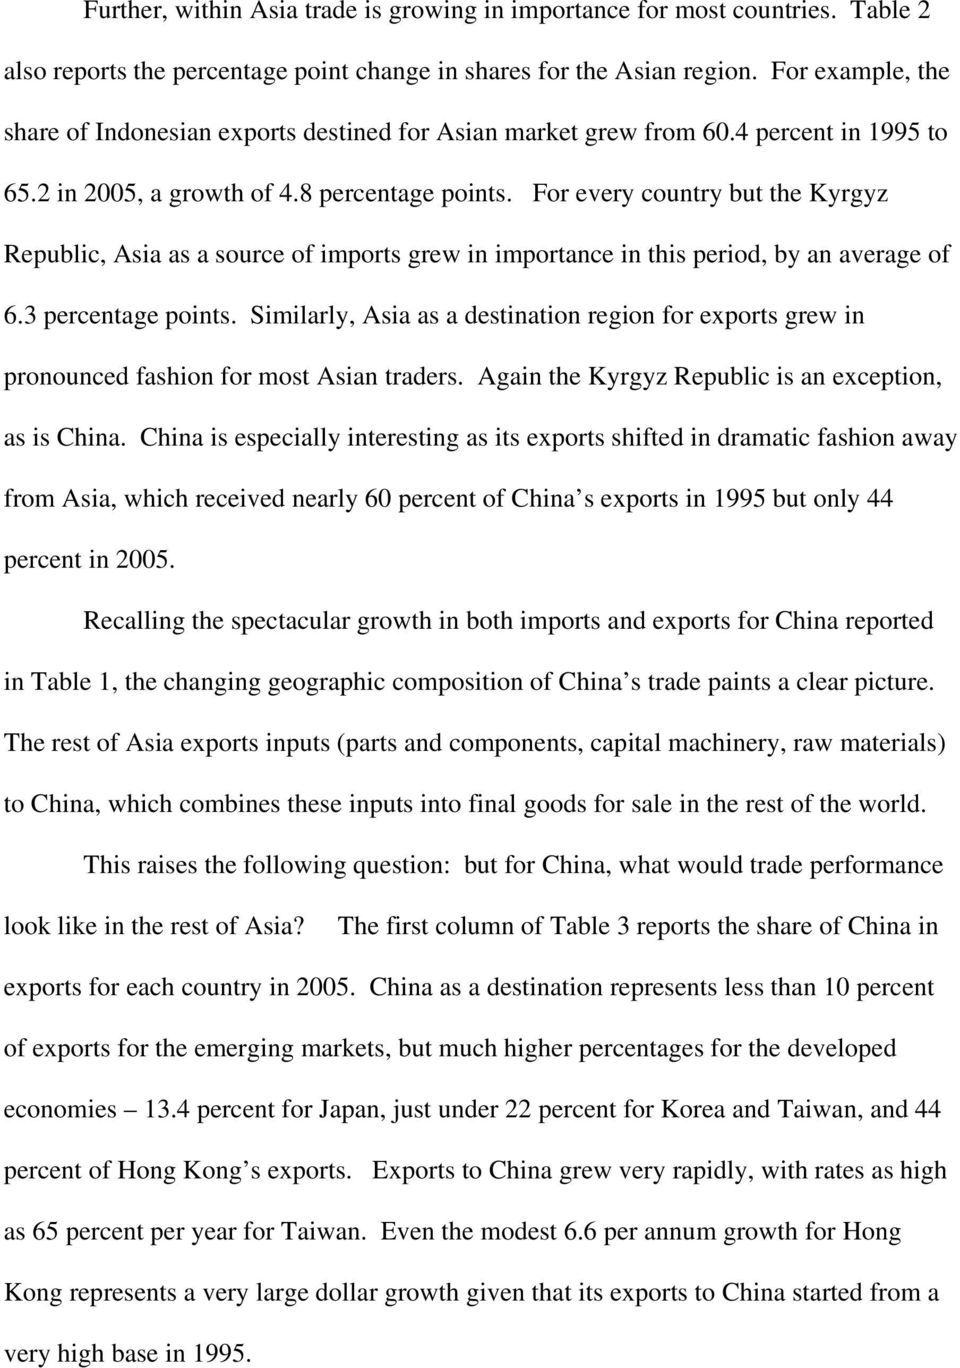 For every country but the Kyrgyz Republic, Asia as a source of imports grew in importance in this period, by an average of 6.3 percentage points.